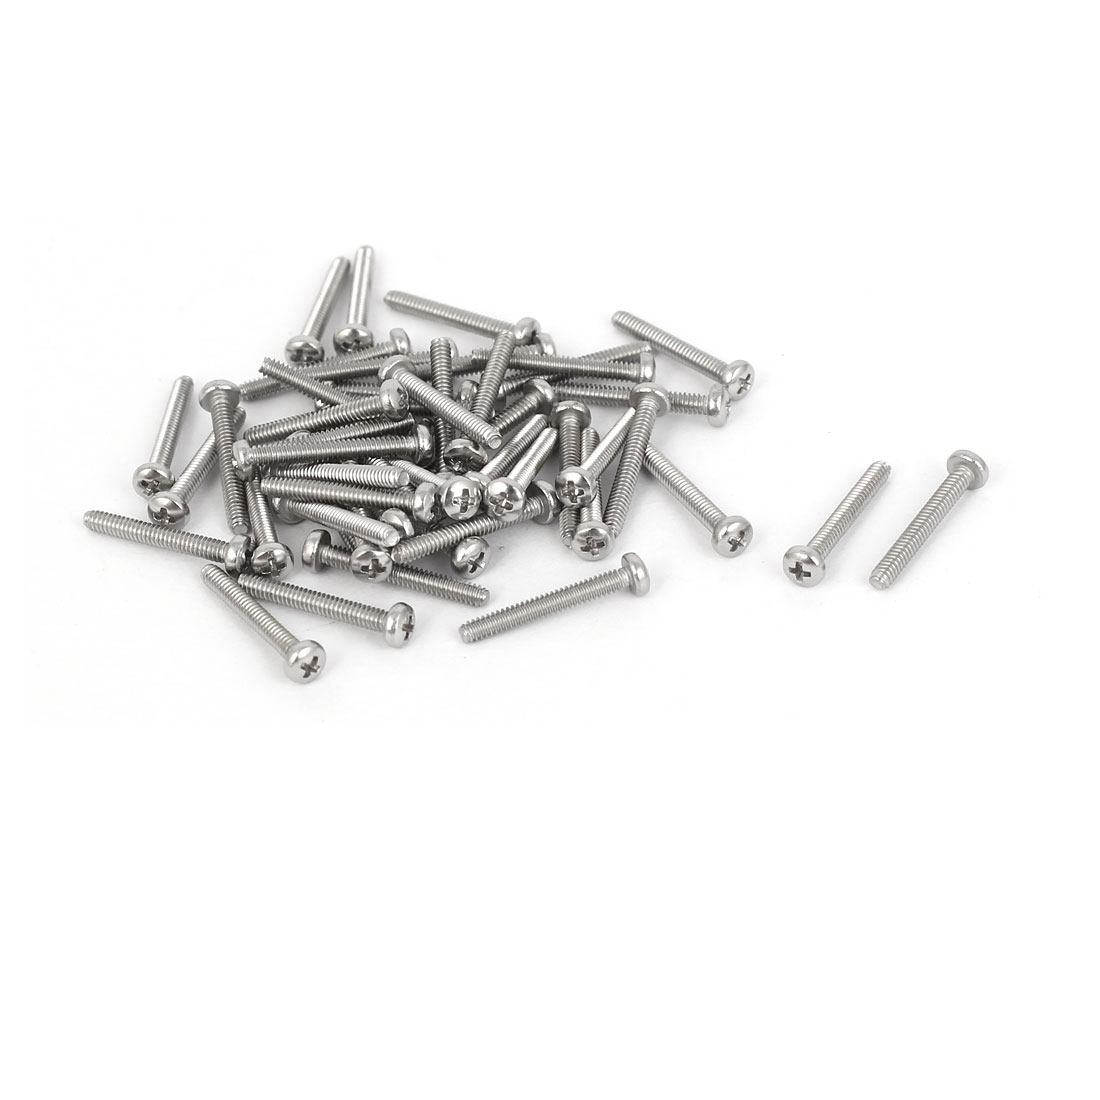 50 Pcs M1.6x12mm 316 Stainless Steel Phillips Pan Head Machine Screws Bolts